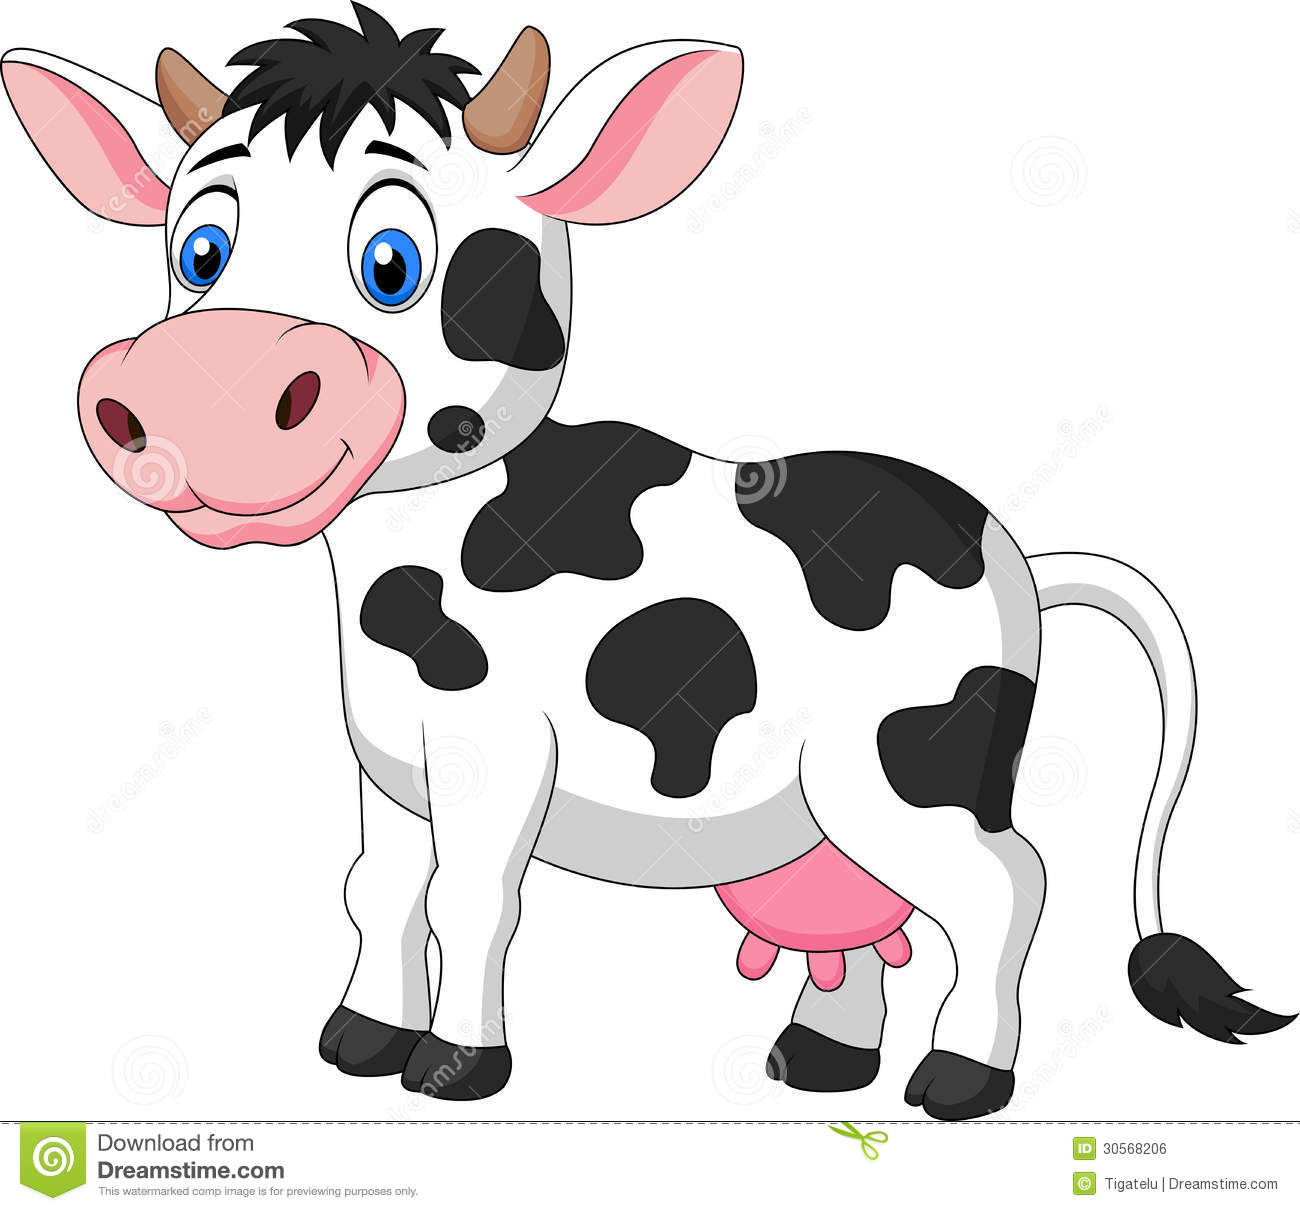 Cute Cow Cartoon Clipart - Clipart Suggest